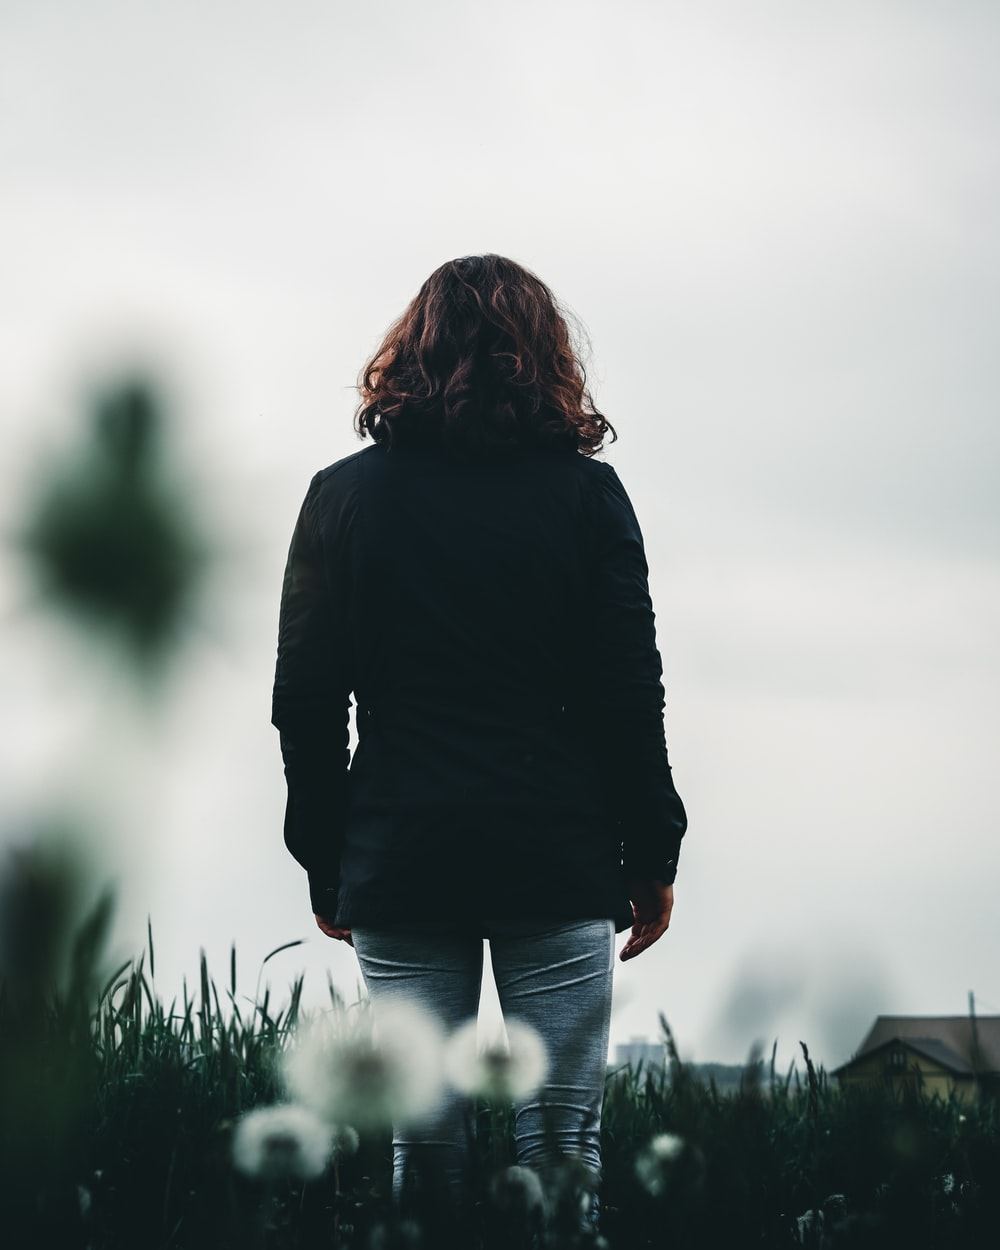 woman in black jacket standing on green grass field during daytime